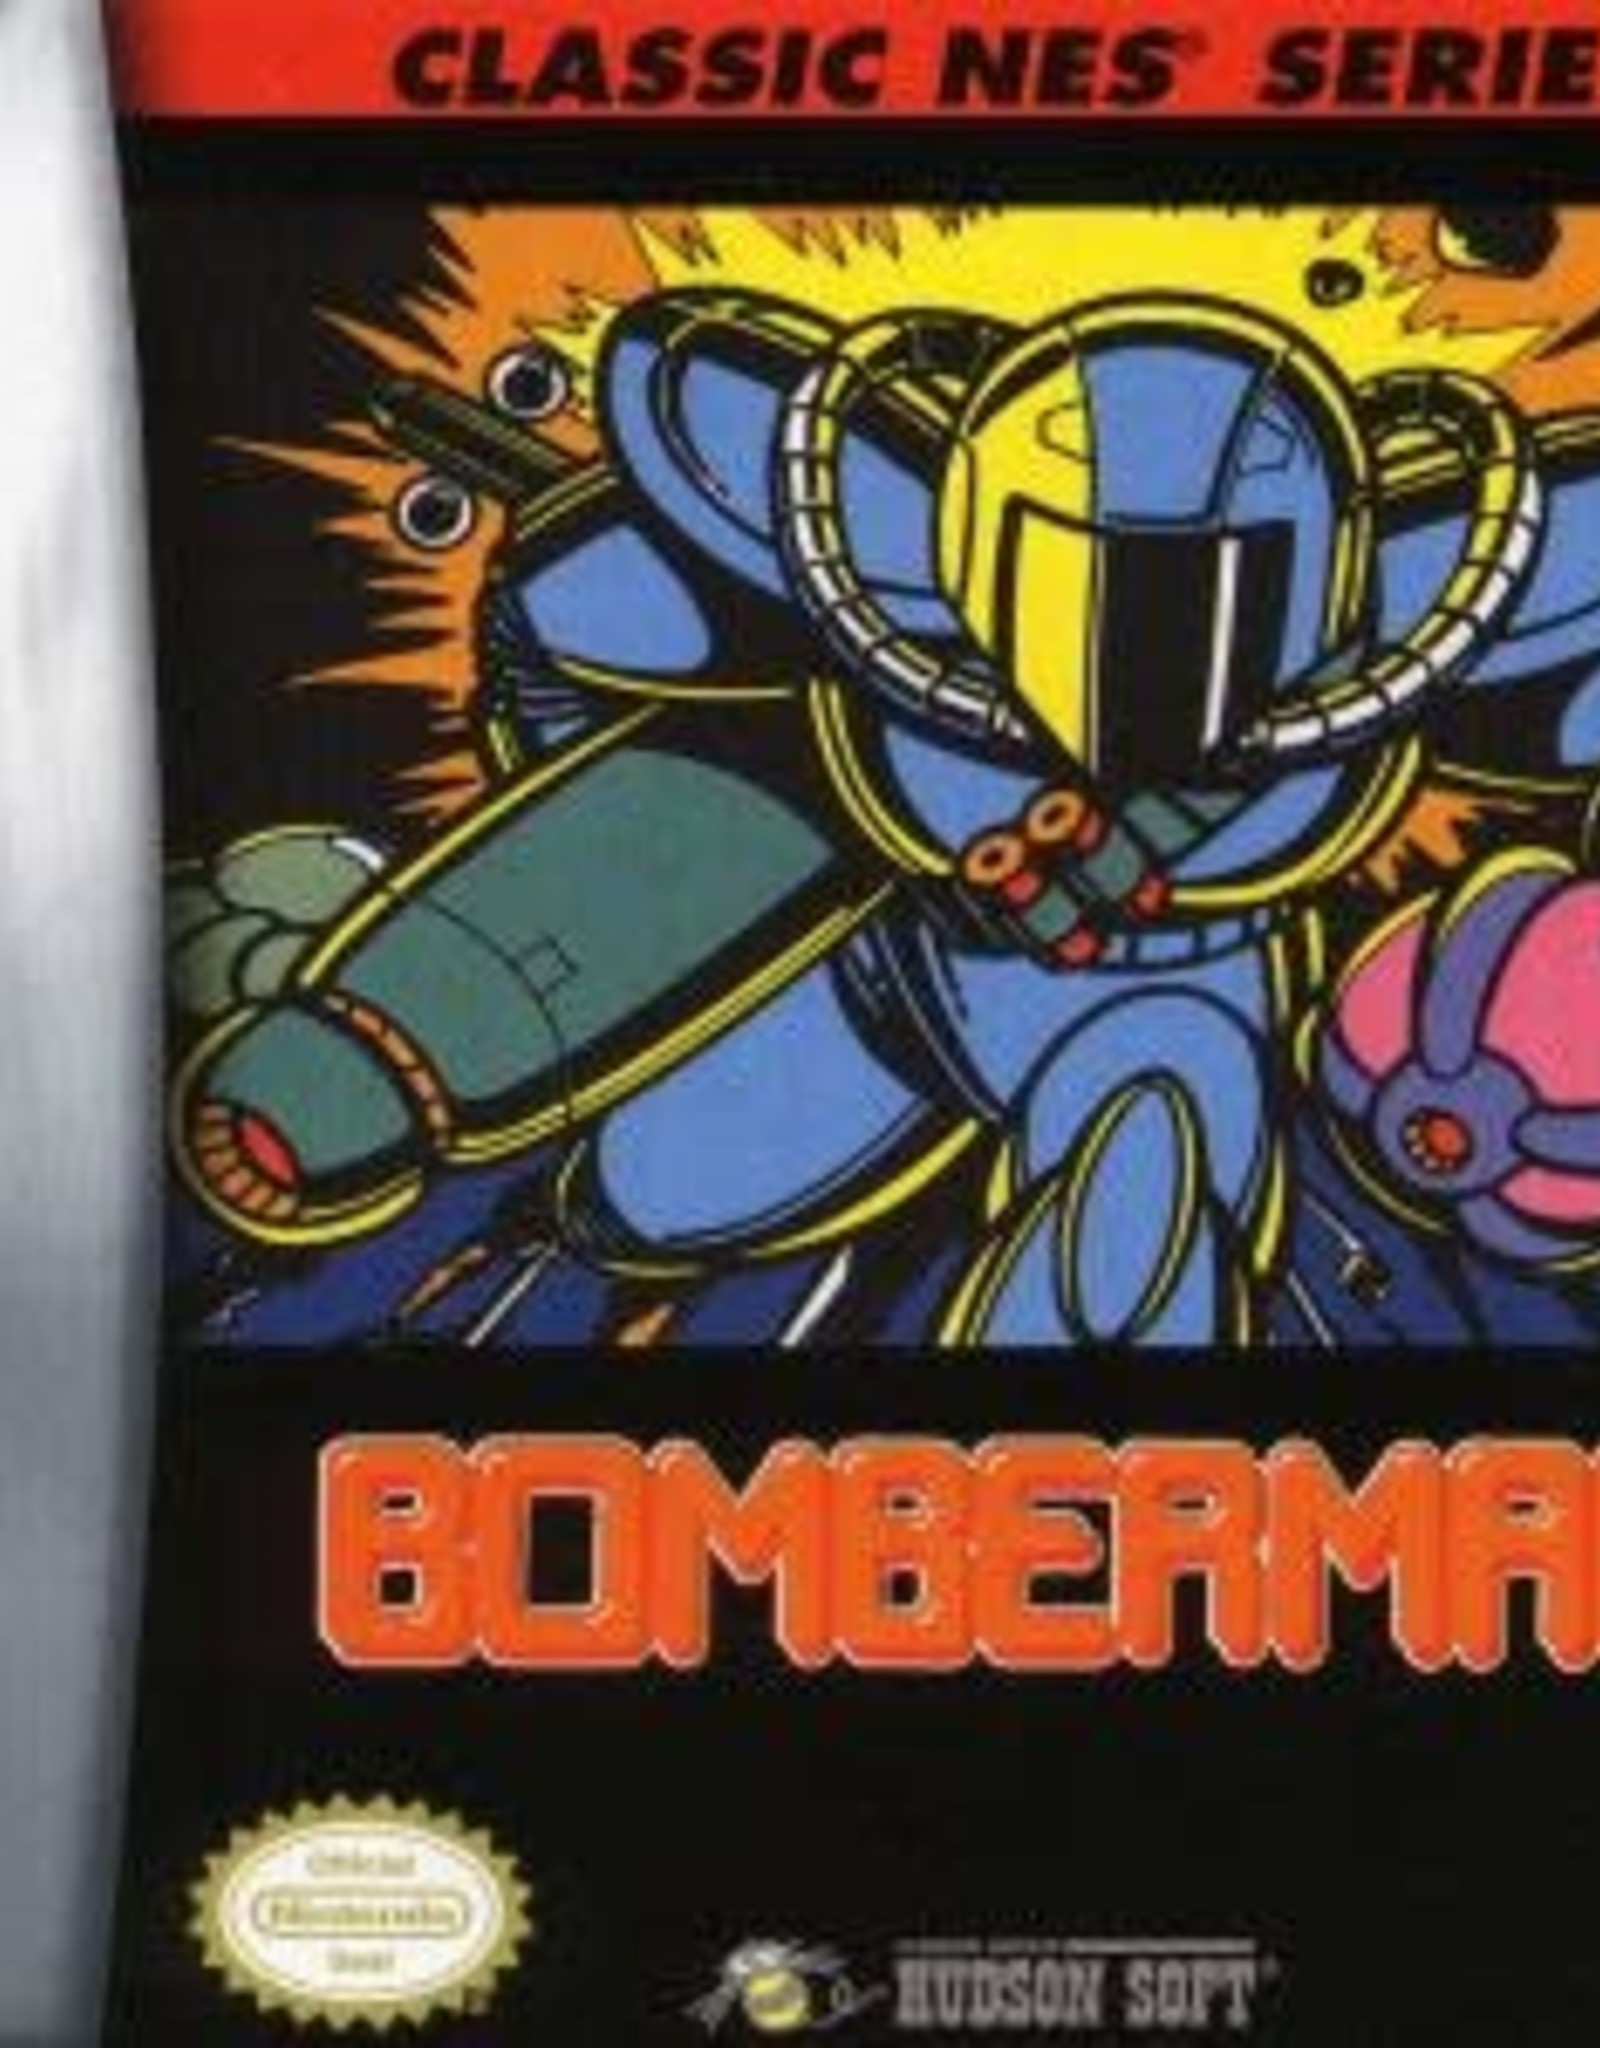 GameBoy Advance Bomberman Classic NES Series (Cart Only)